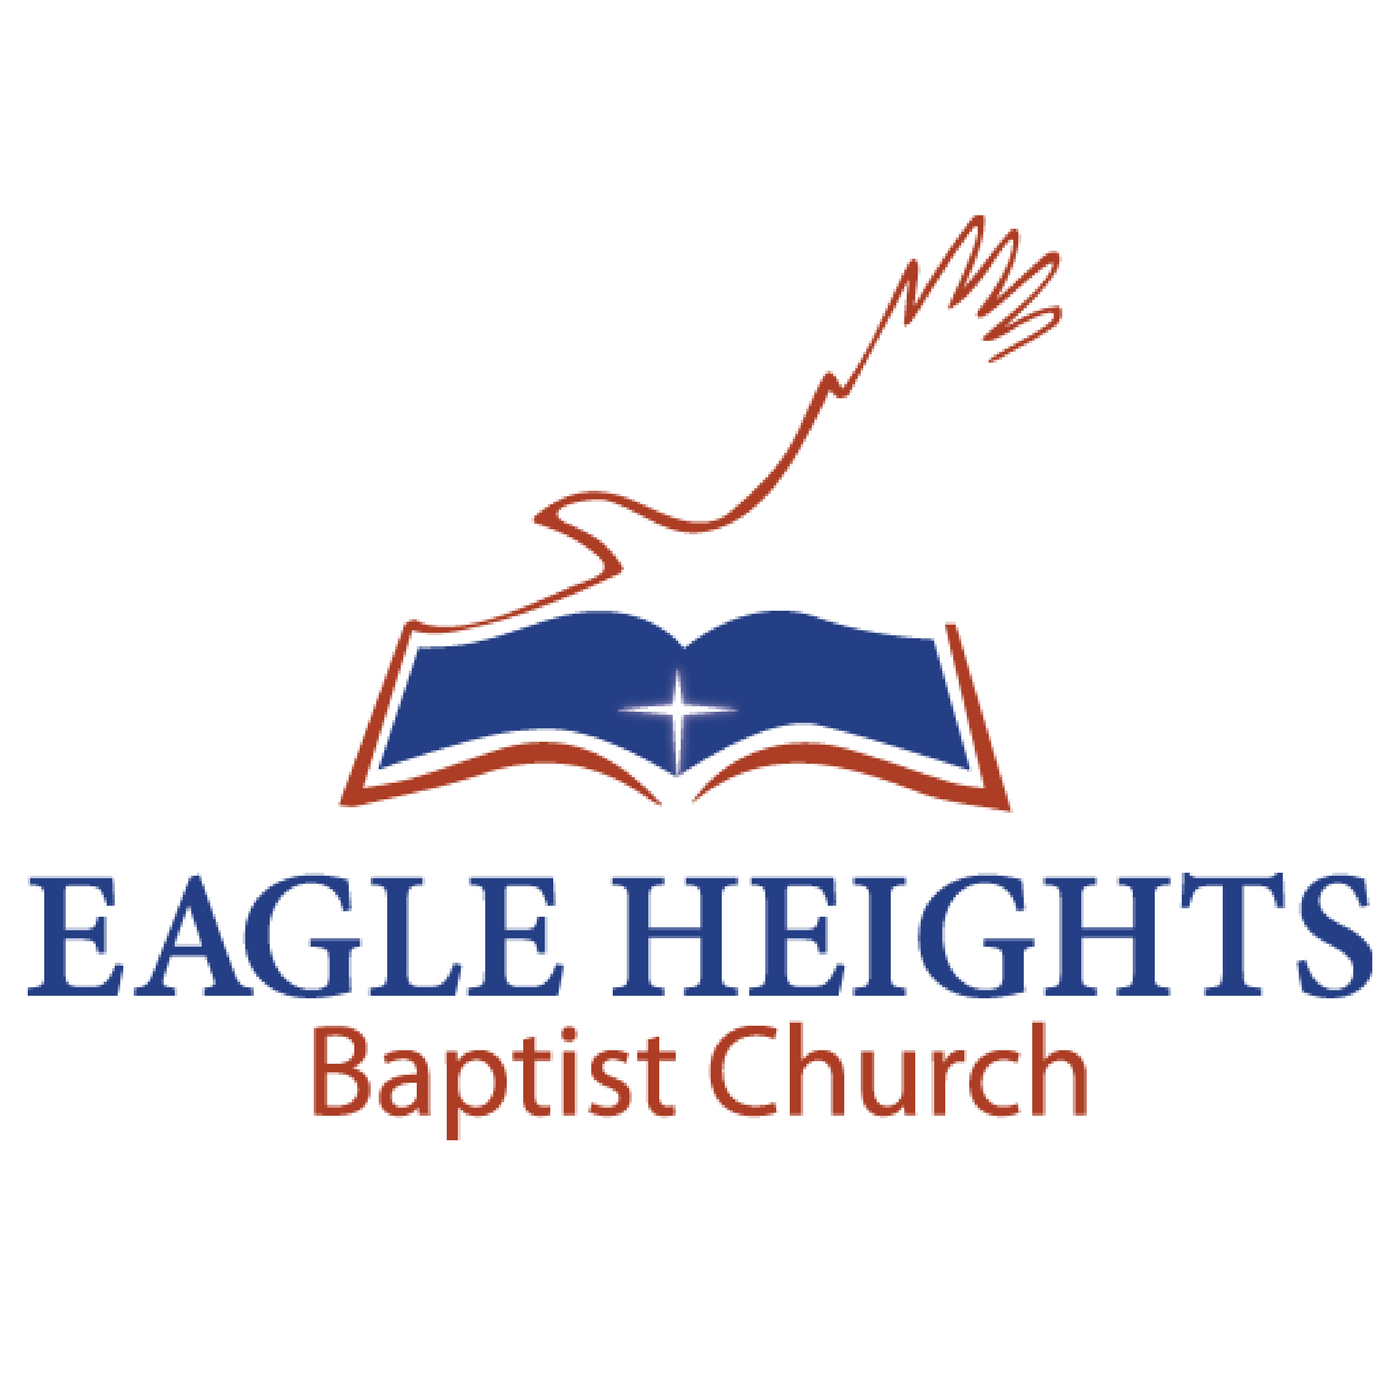 Eagle Heights Baptist Church - Kansas City